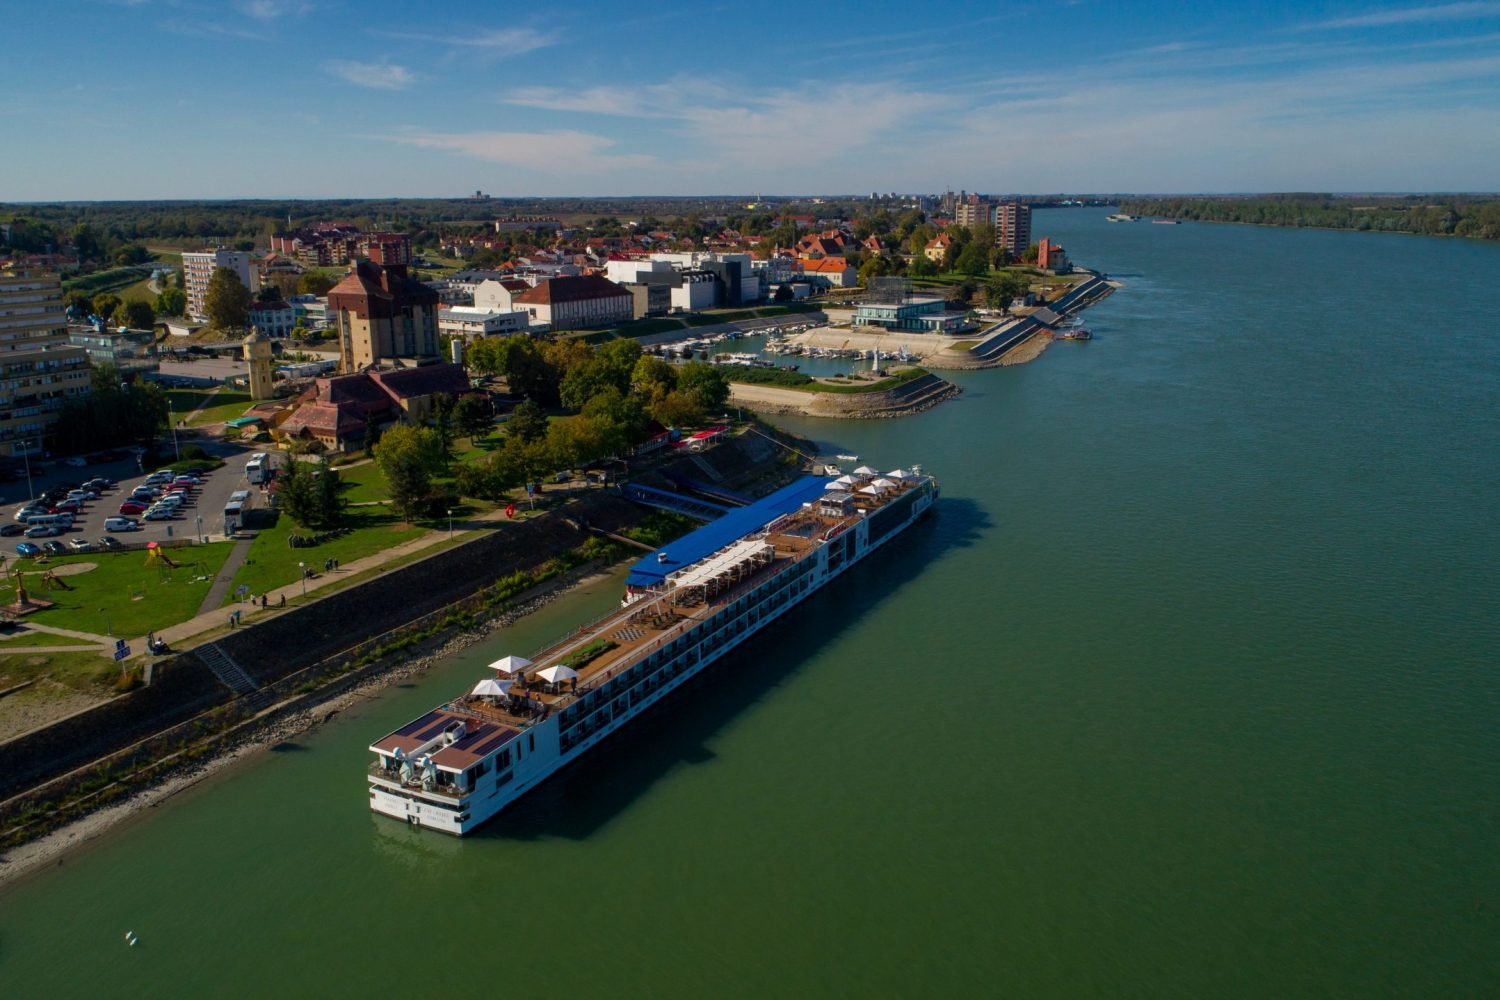 vukovar-boat-pointers-travel